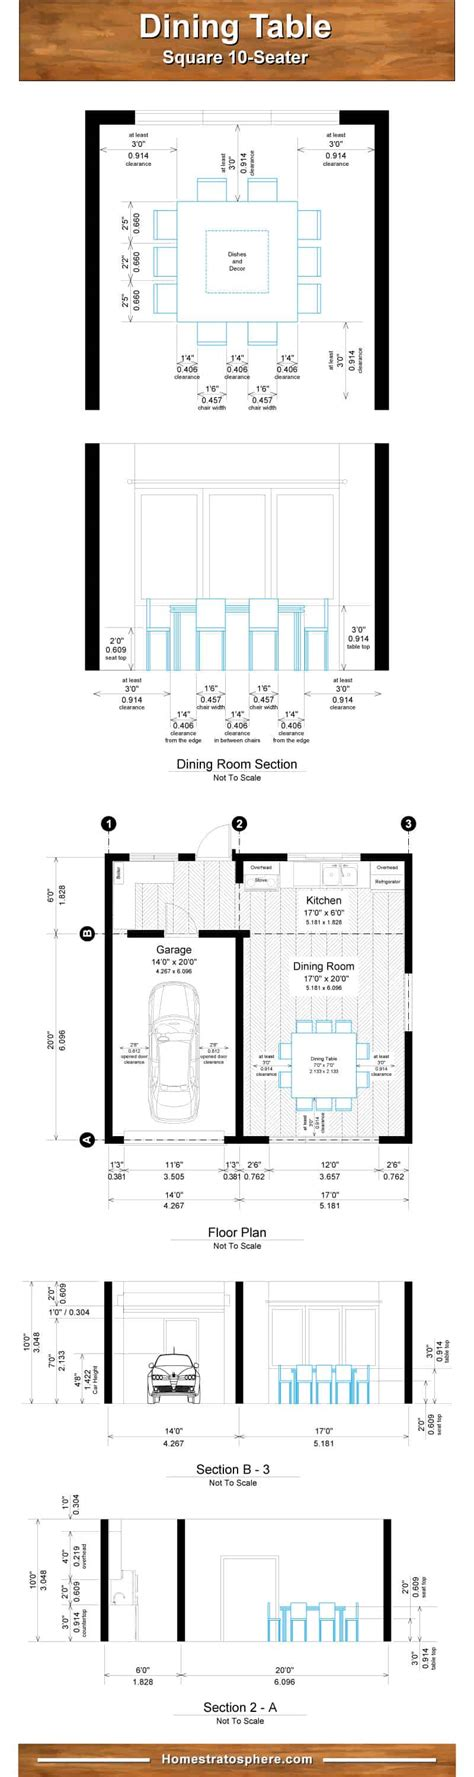 Here are some helpful tools to make sure 10 seater dining table dimensions. Proper Dining Room Table Dimensions for 4, 6, 8, 10 and 12 People (Charts)